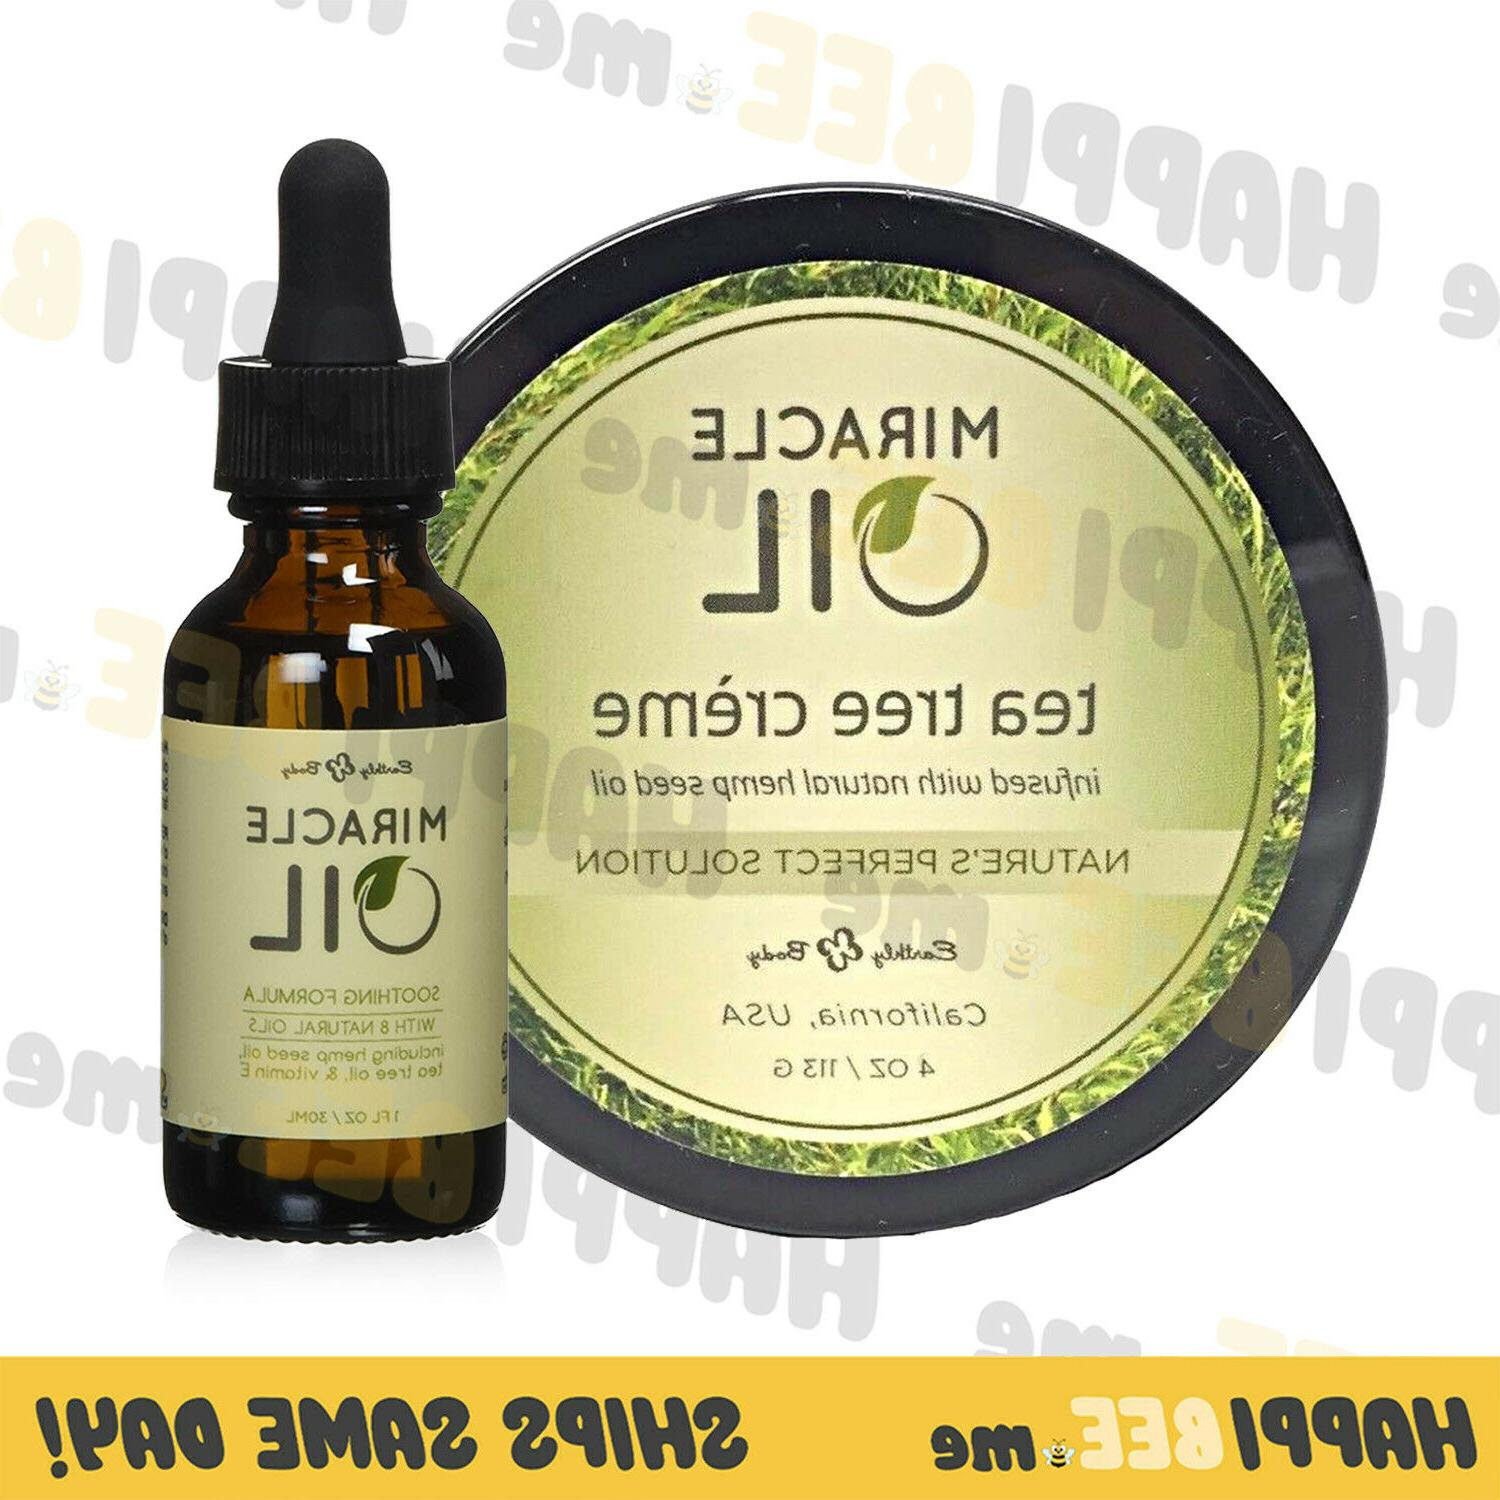 daily miracle oil creamtriple strength intensive body